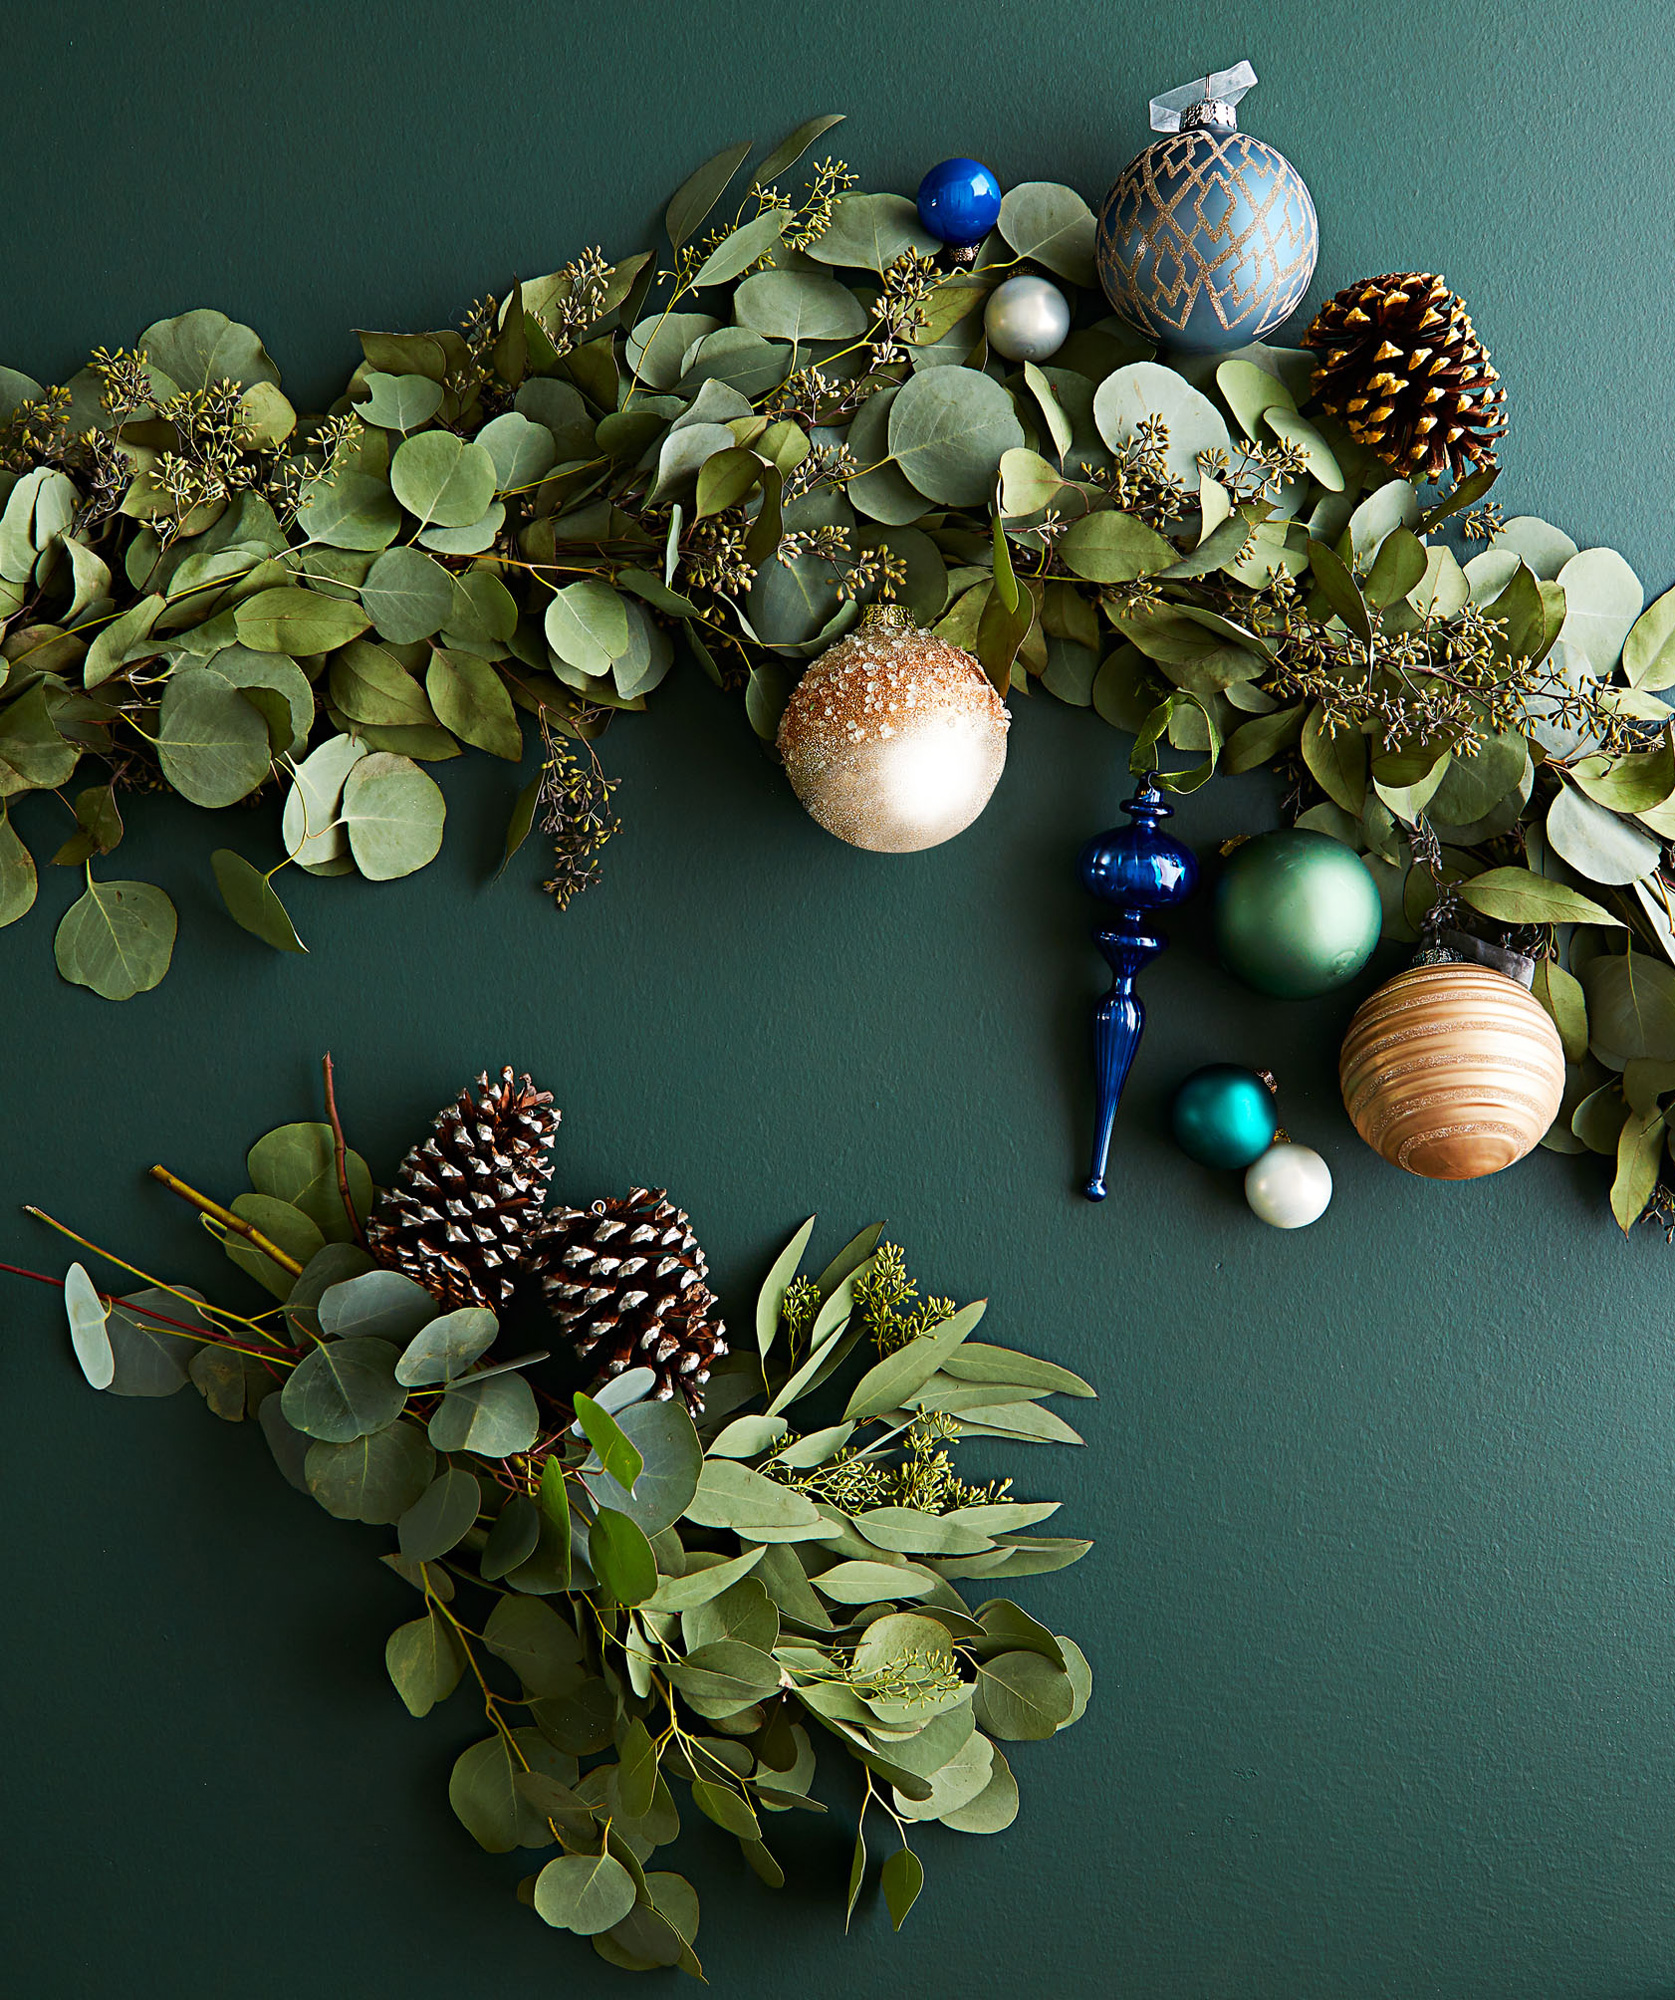 Spruce up branches with natural touches such as pinecones or eucalyptus garlands.